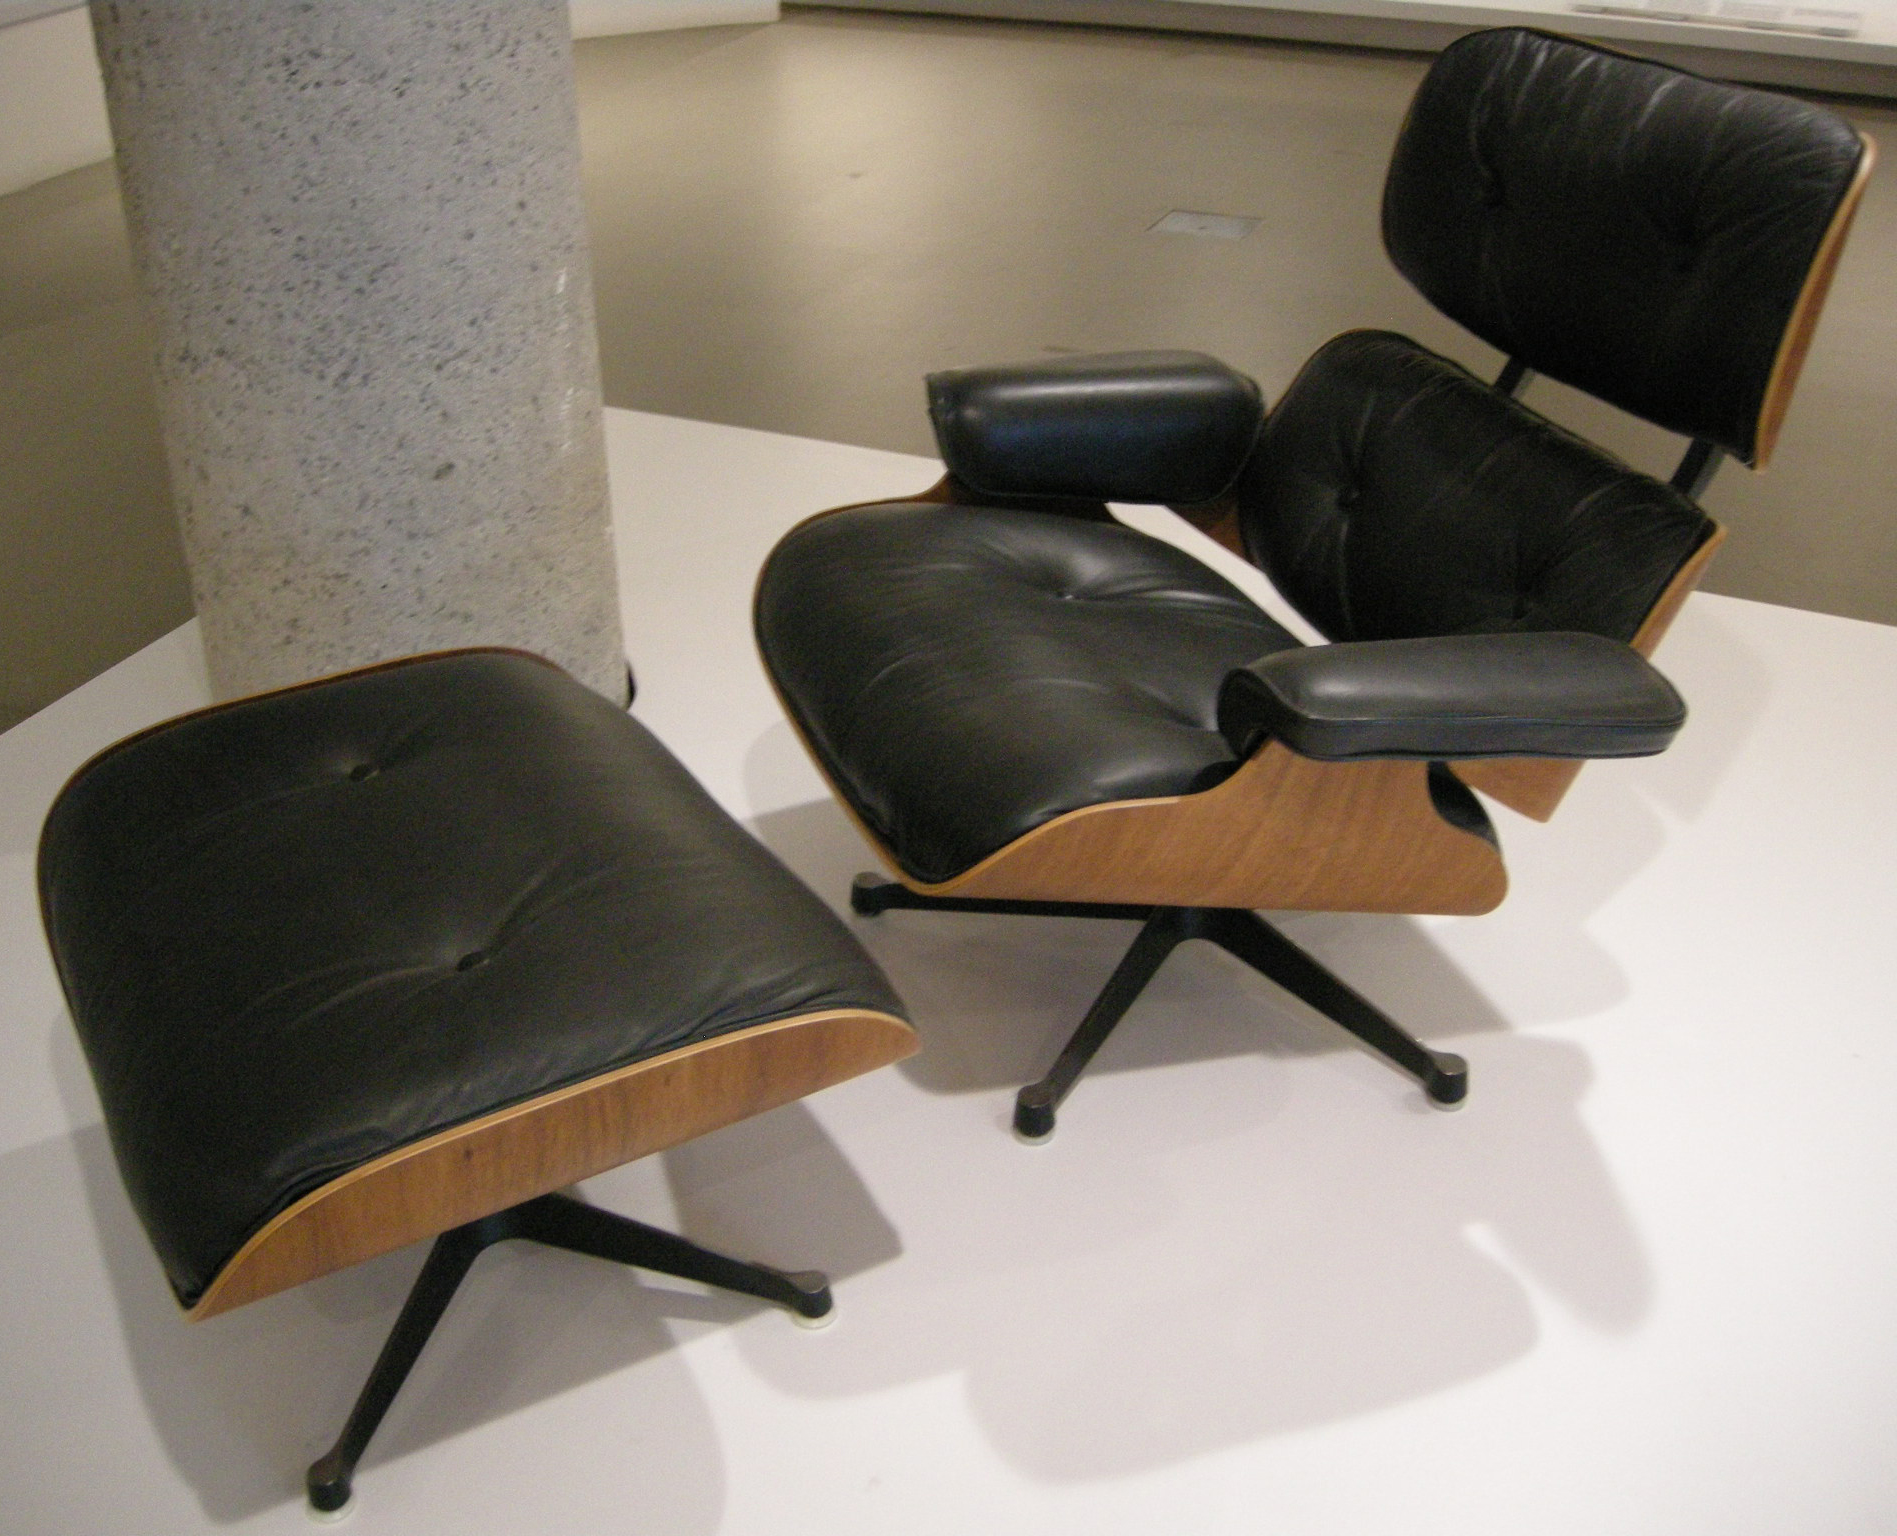 FileNgv Design Charles Eames And Herman Miller Lounge